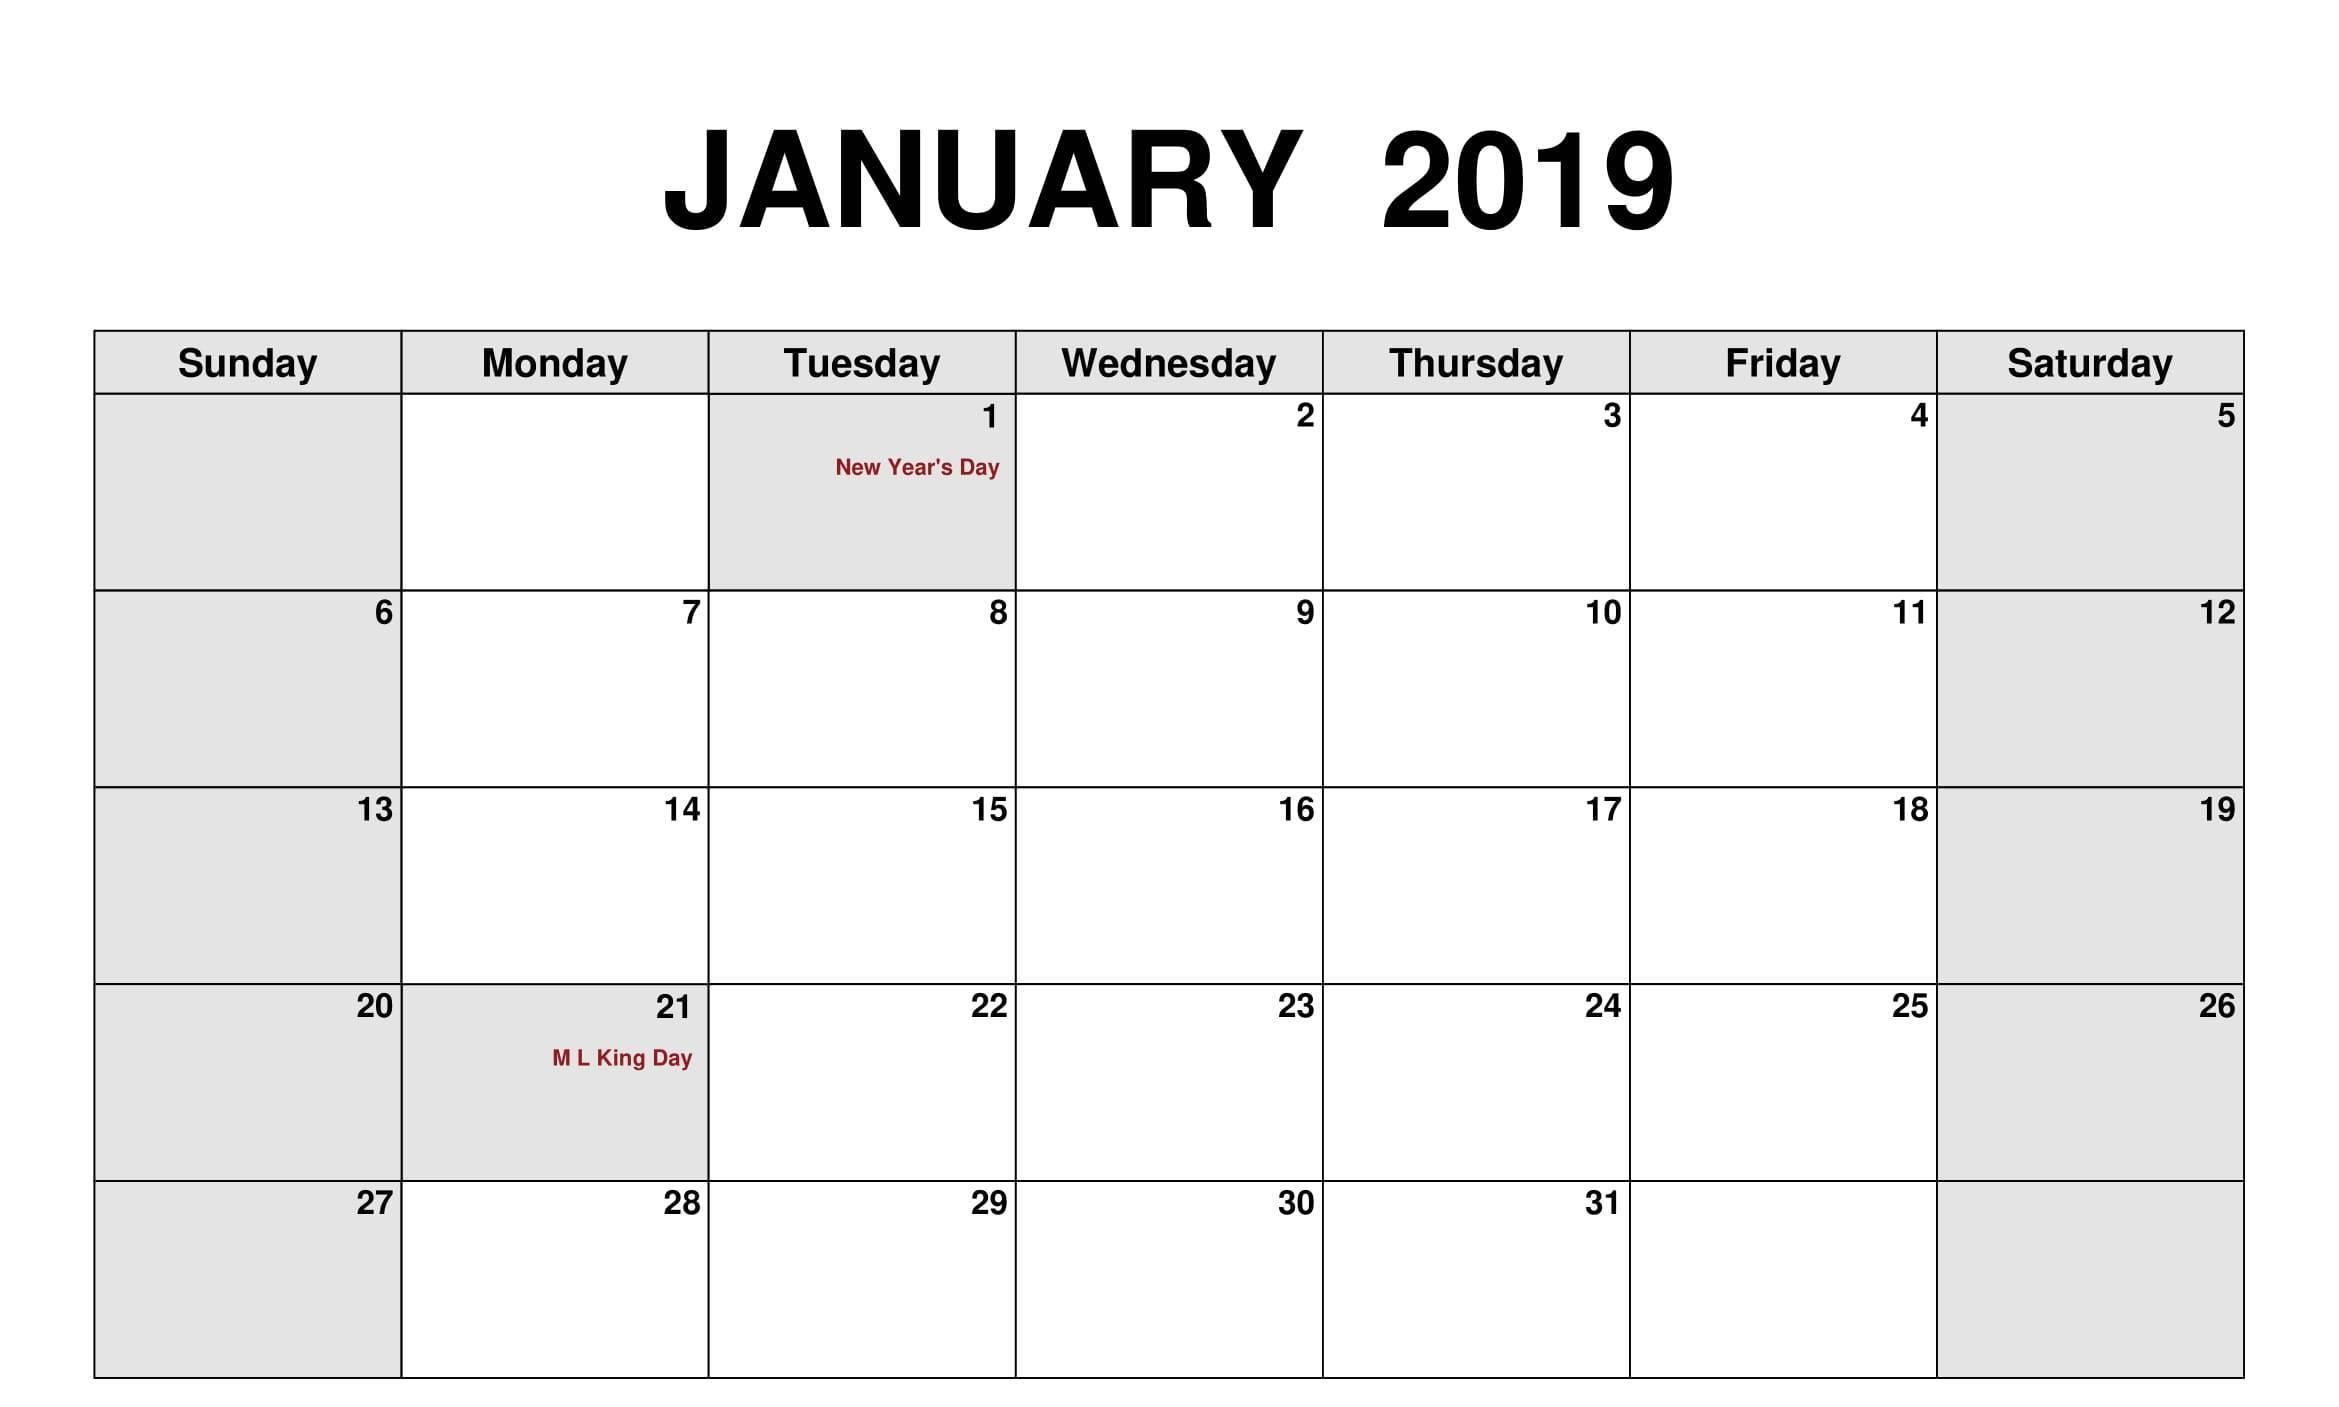 January 2019 Calendar With National Holidays